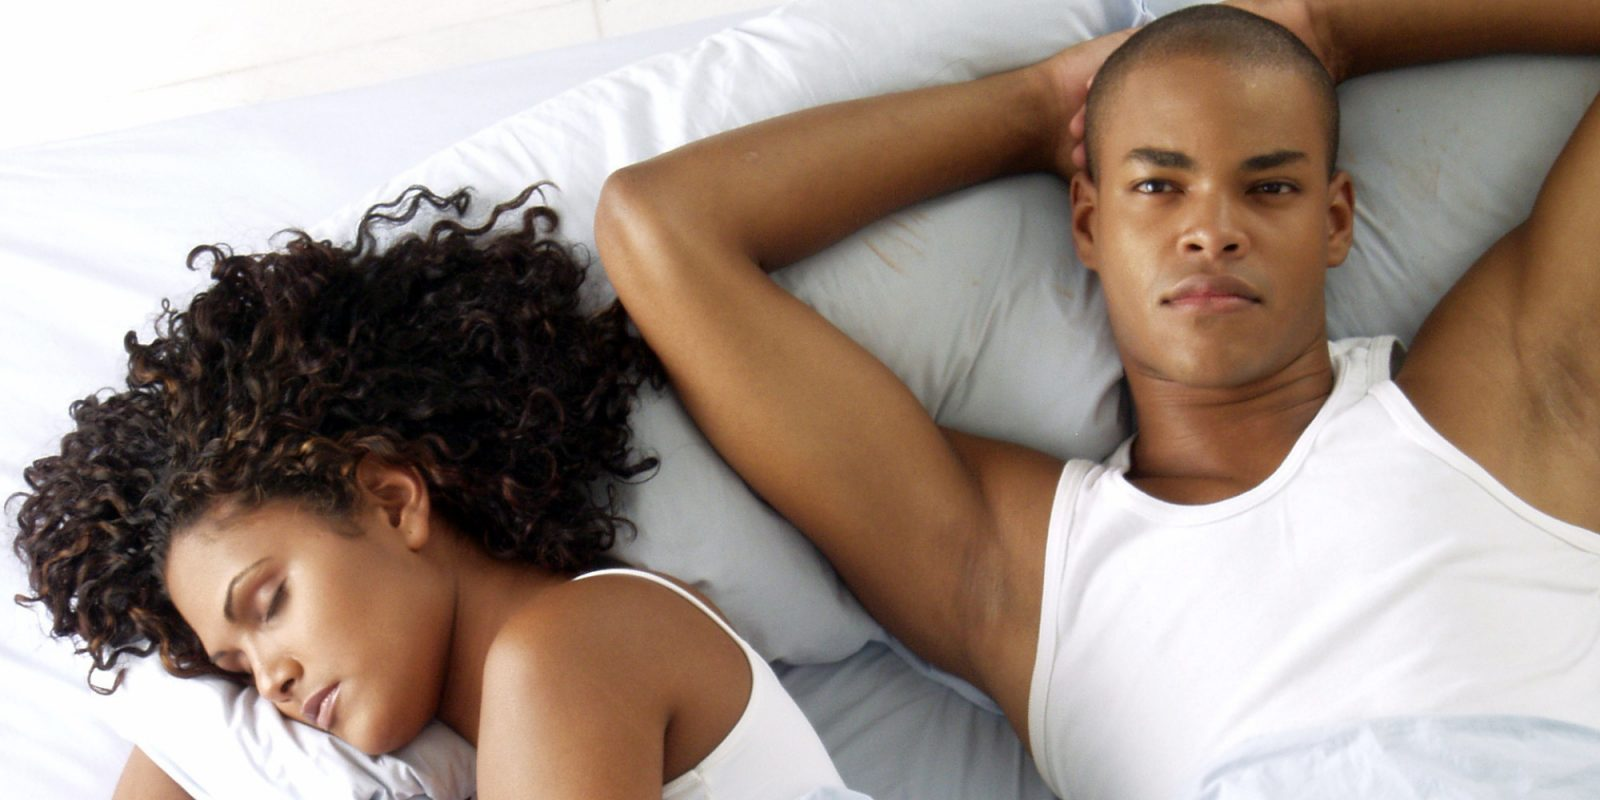 When Things Get Rough: Is It Time to End Your Relationship?